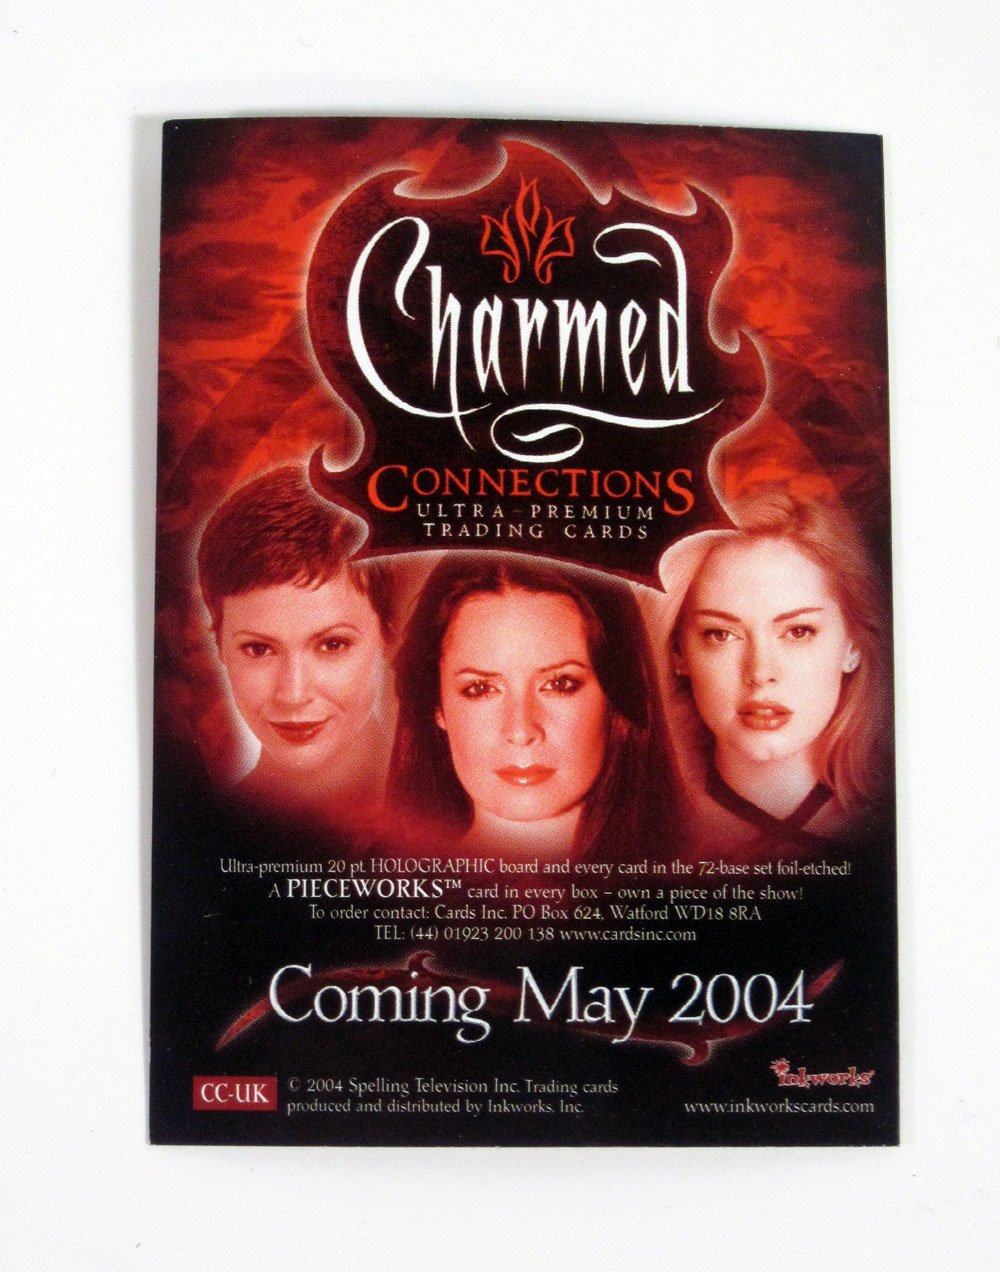 CHARMED CONNECTIONS PROMOTIONAL CARD CC-UK